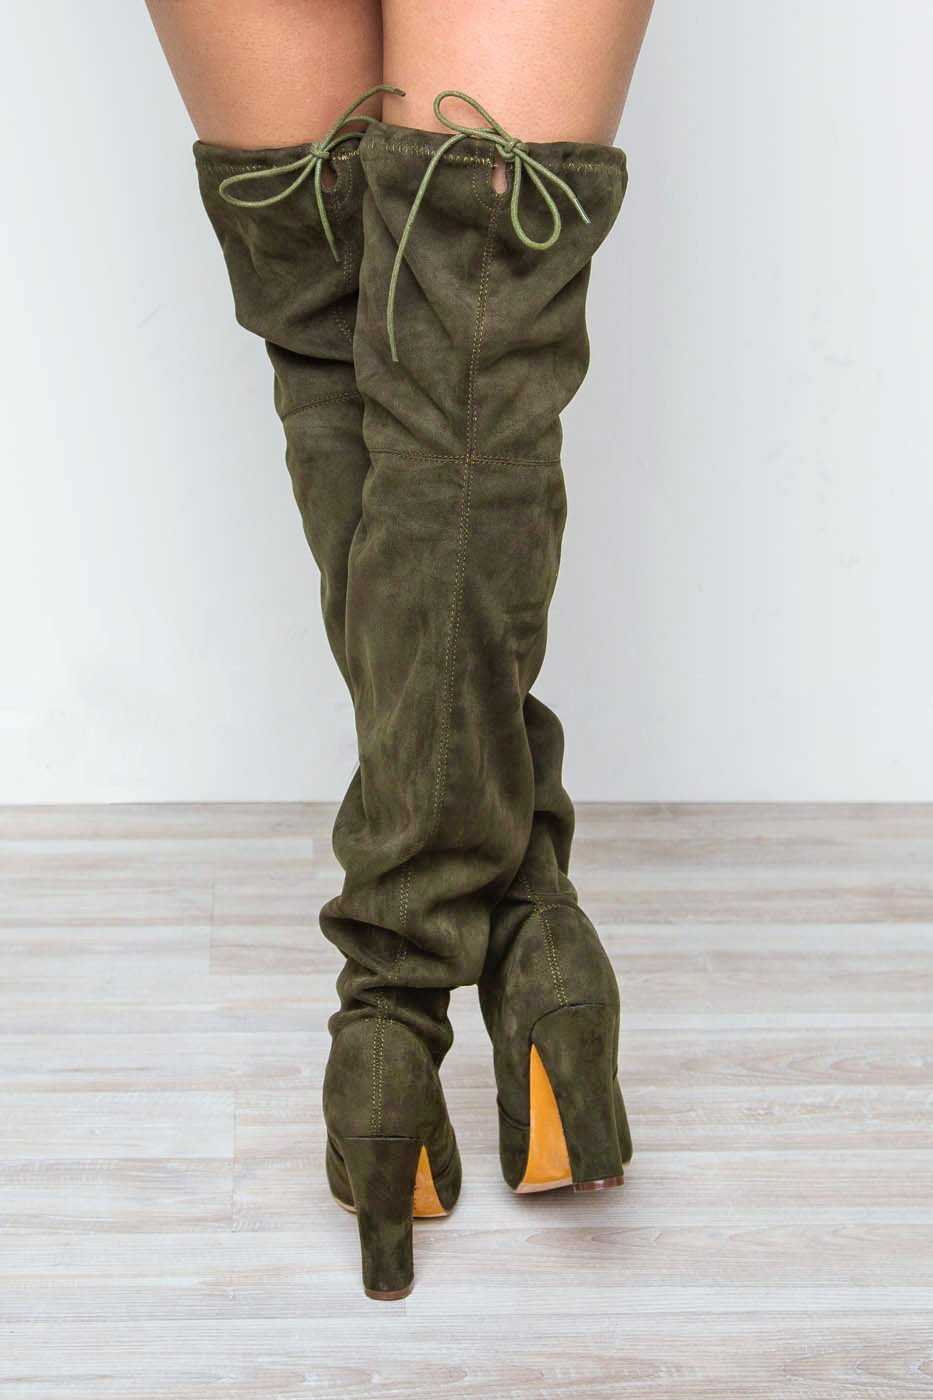 a53539815f0 ... Boots - Showdown Thigh High Boots - Olive ...